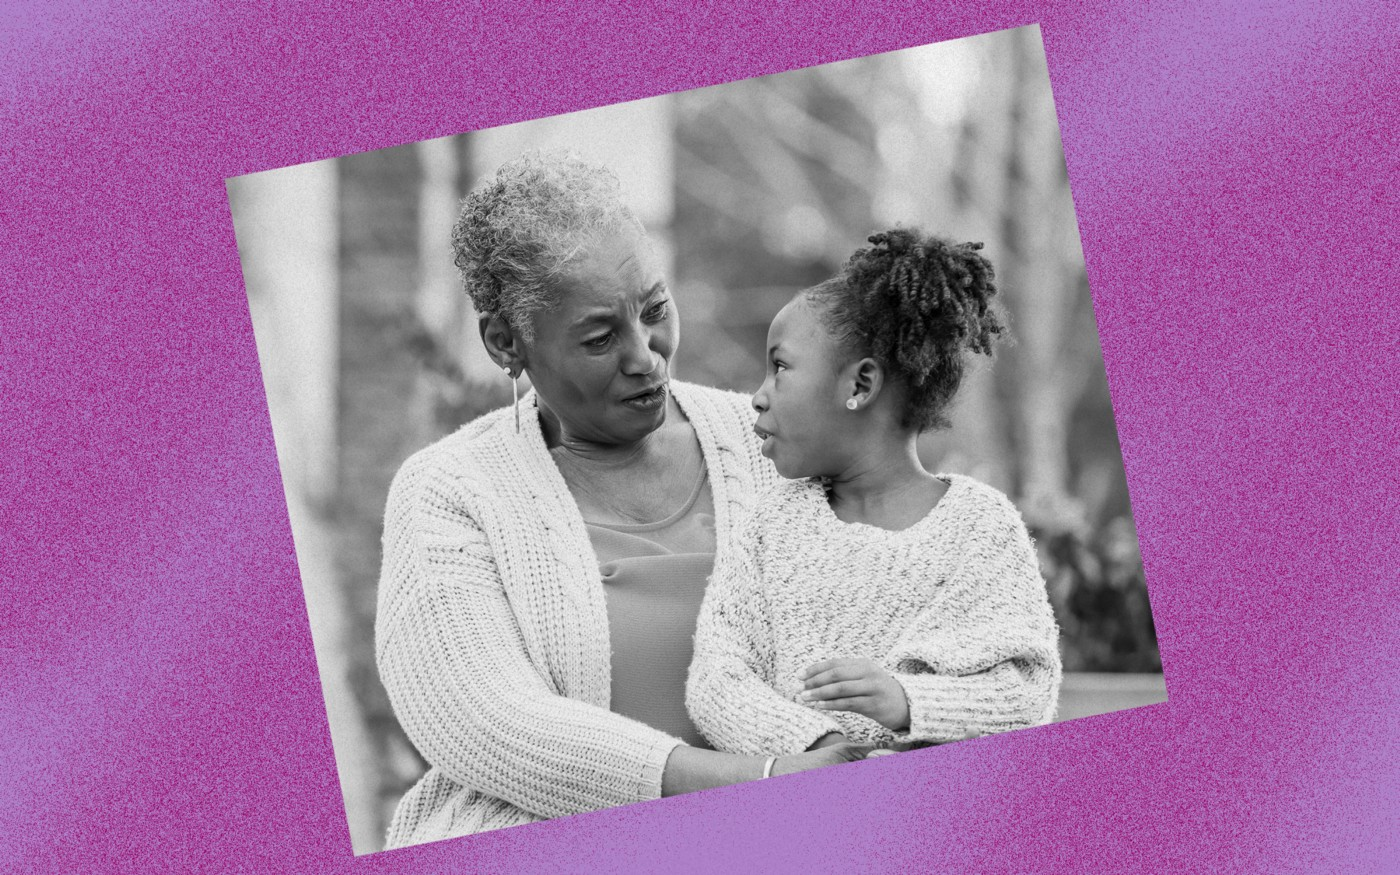 Black and white photo of a Black grandma and granddaughter against a violet background.